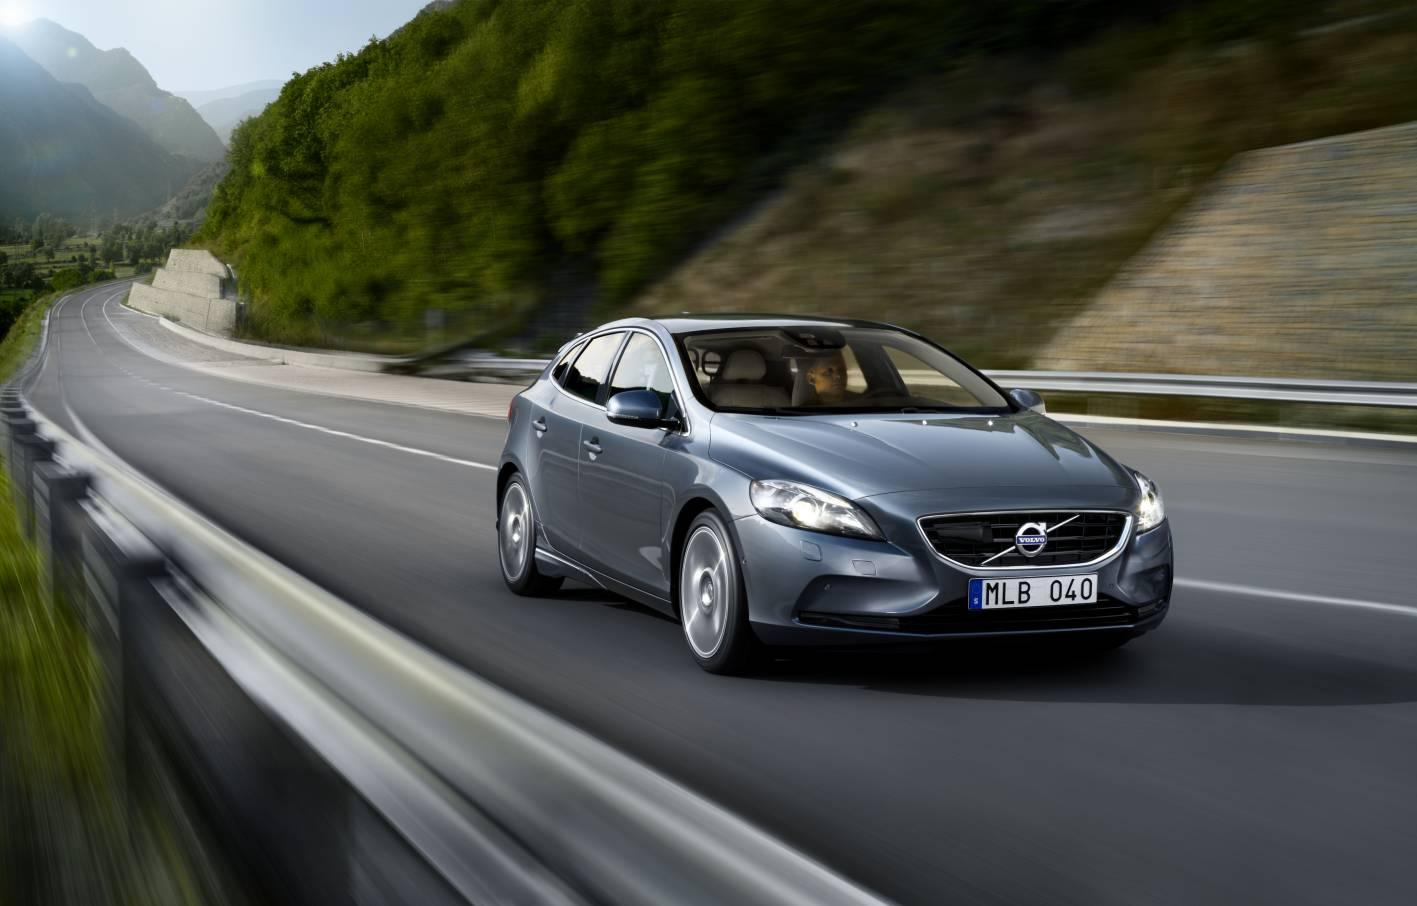 The all-new Volvo V40 possesses some high-tech features, including the world's first pedestrian airbag system